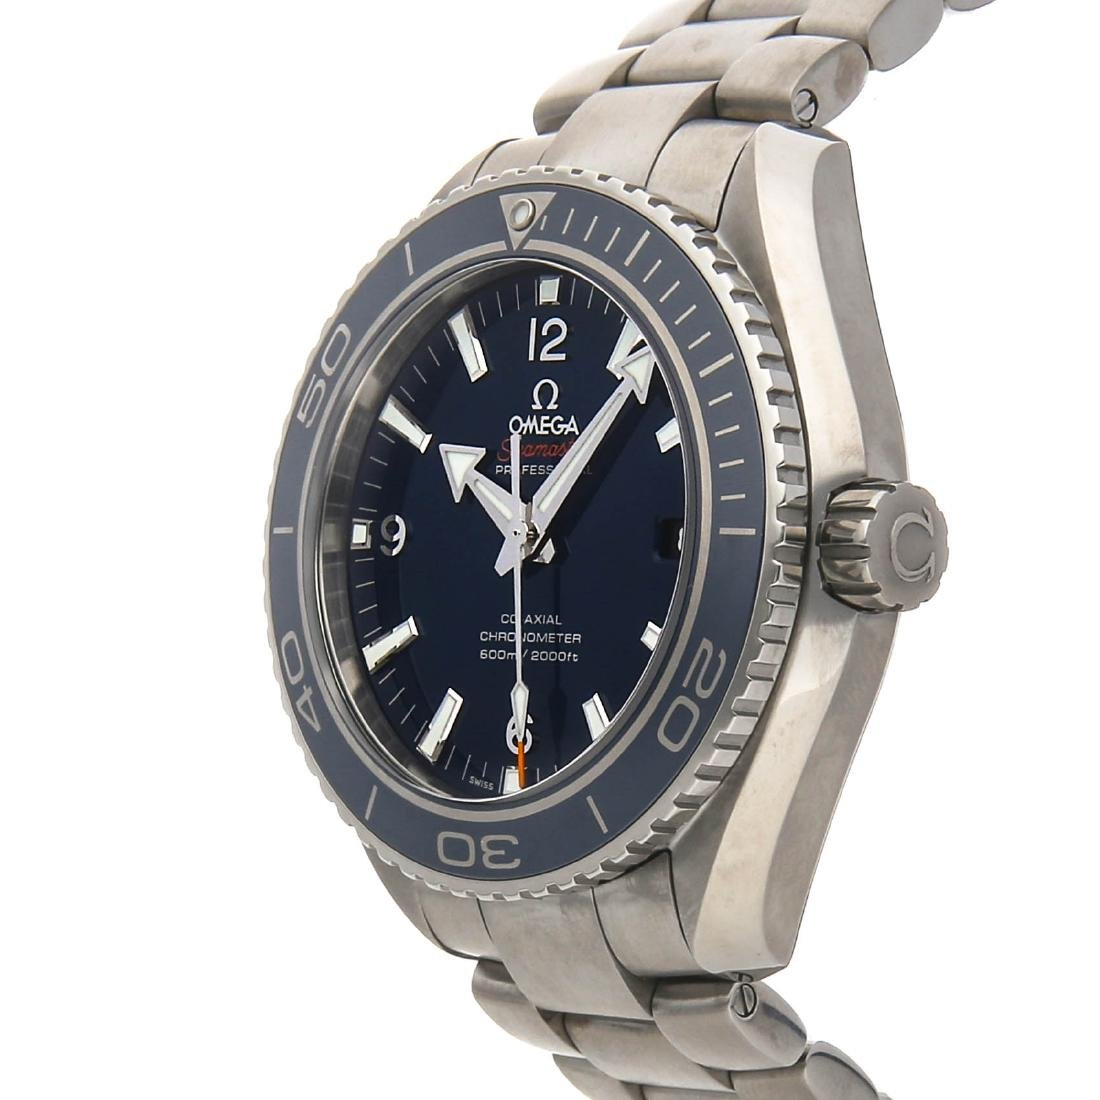 OMEGA SEAMASTER PLANET OCEAN 600M CO-AXIAL - 2